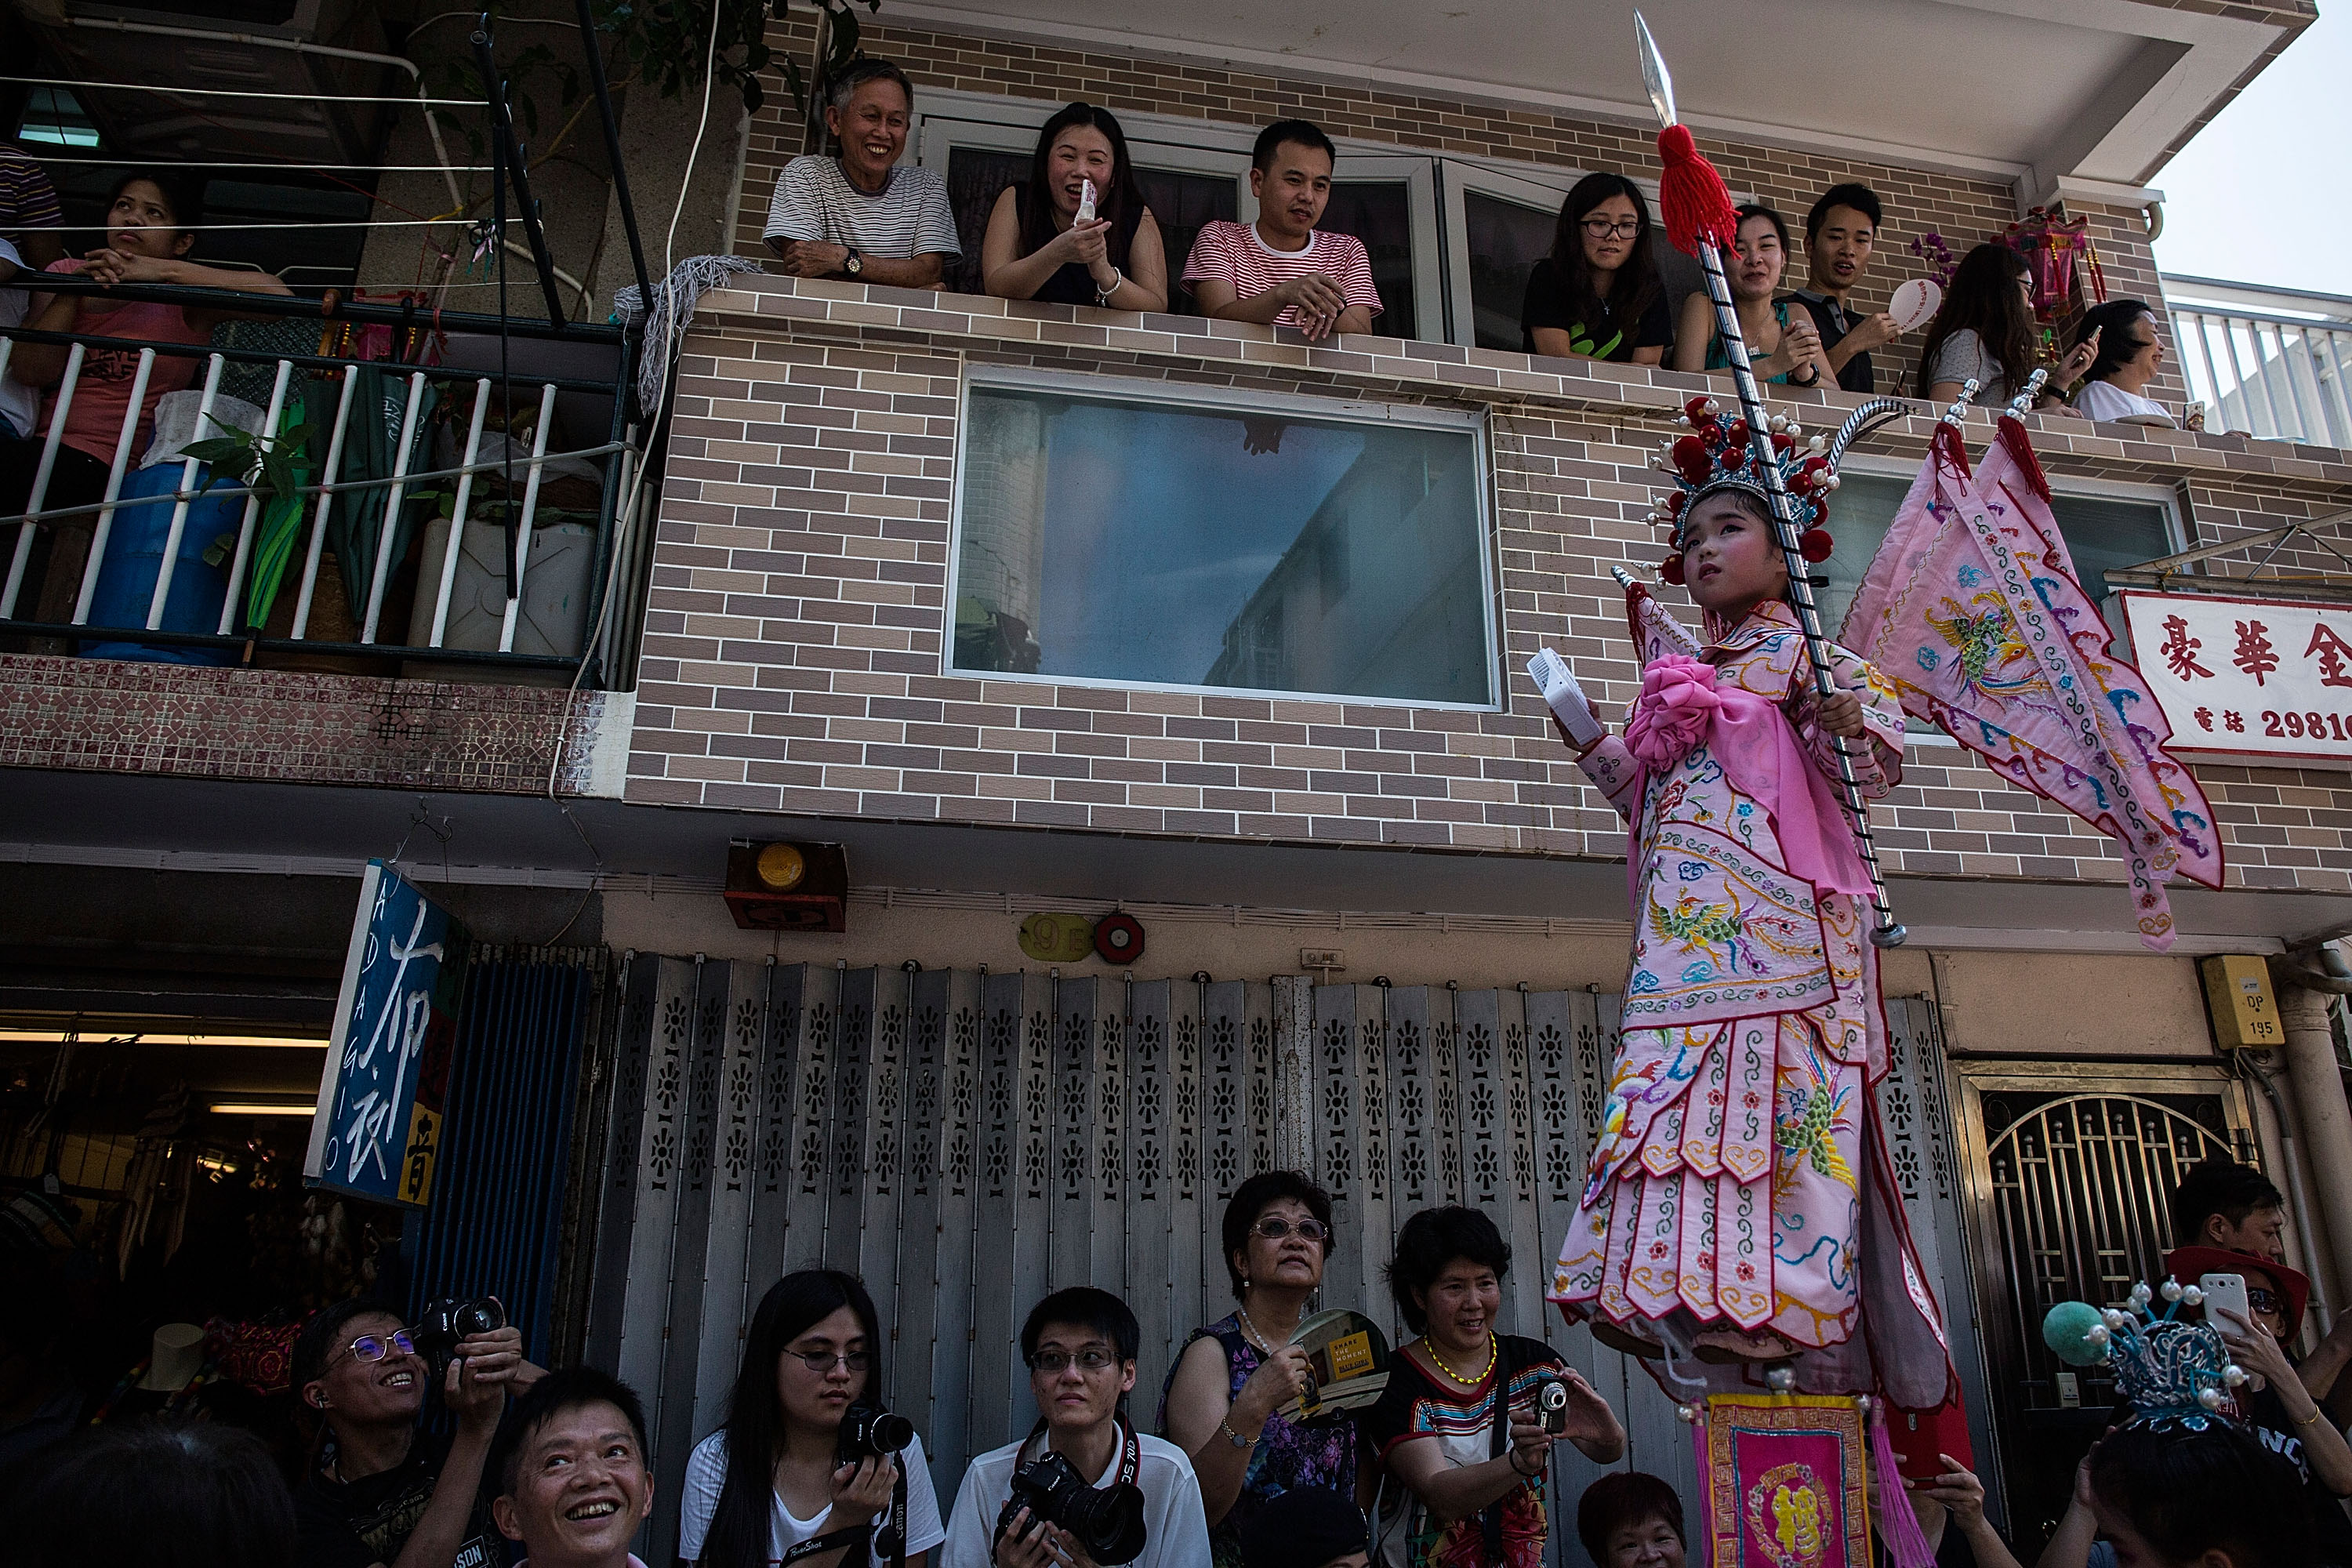 HONG KONG - MAY 25:  A child parades on a float during the Bun Festival on May 25, 2015 in Hong Kong, Hong Kong. One of Hong Kong's most colourful cultural celebration event, Cheung Chau Bun Festival, will be staged on 25 May 2015 (Monday) till 26 May 2015 midnight (Tuesday). This festival has over 100 years of history. Every year, thousands of people descend upon the tiny island for The Piu Sik (Floating Colours) Parade, Lucky Bun (Ping On Bun) and The Bun Scrambling Competition, the ancient custom during the festival. The tradition has been passed down for generations. To ensure the tradition keeps passing on, every year, Cheung Chau Islanders fuse the new elements with the custom to draw the attention from the young. This year, 'K-Pop stars' will be featured by one of the Piu Sik parade teams, the first-ever 'Ping On (Lucky) Macaron' with Chinese tea favour is invented, and more to be found out on the island.  (Photo by Lam Yik Fei/Getty Images)